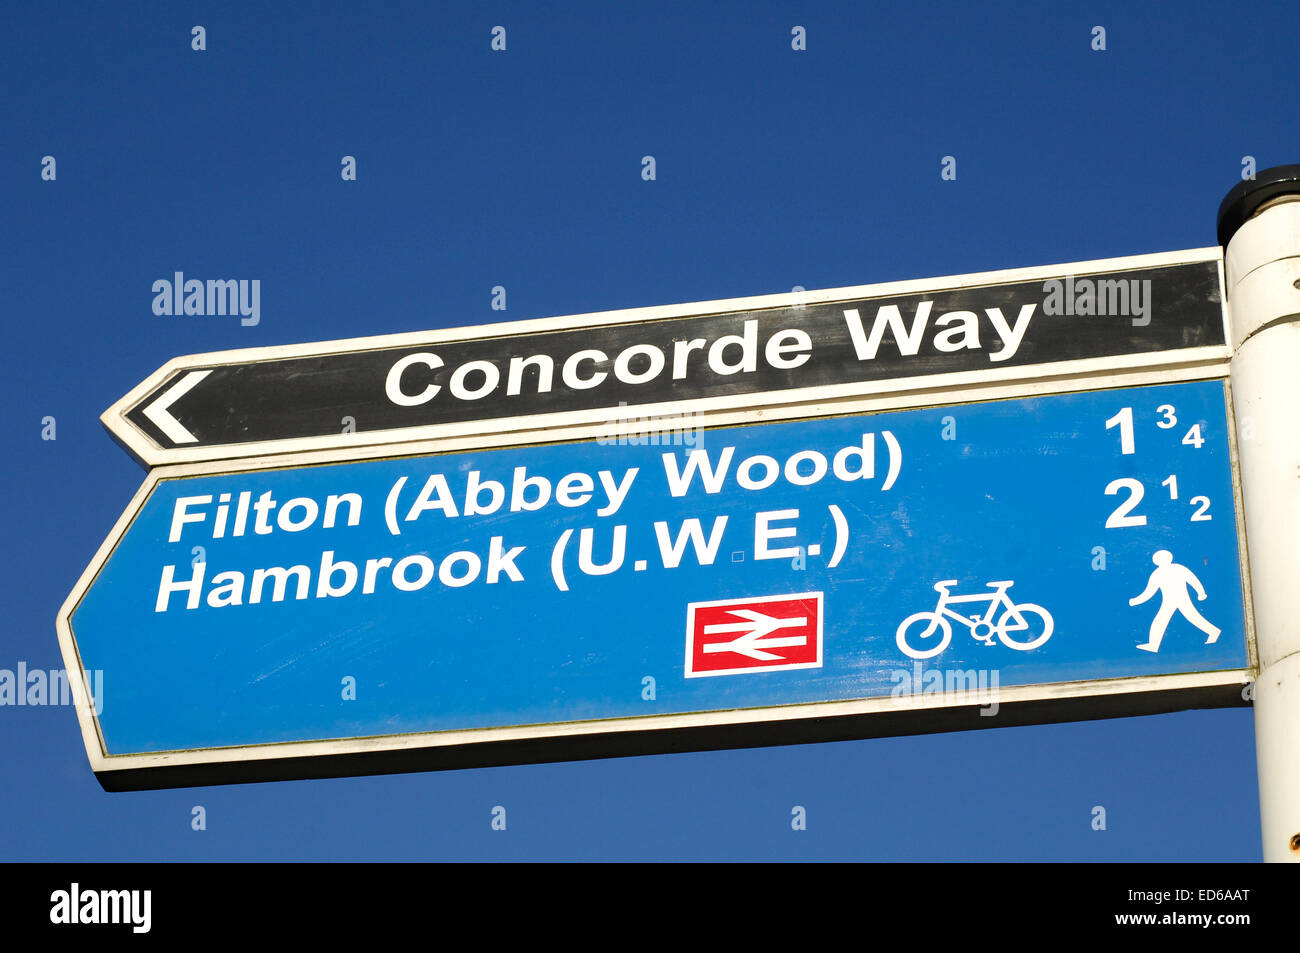 Concorde Filton Abbey Wood MOD sign Bristol - Stock Image